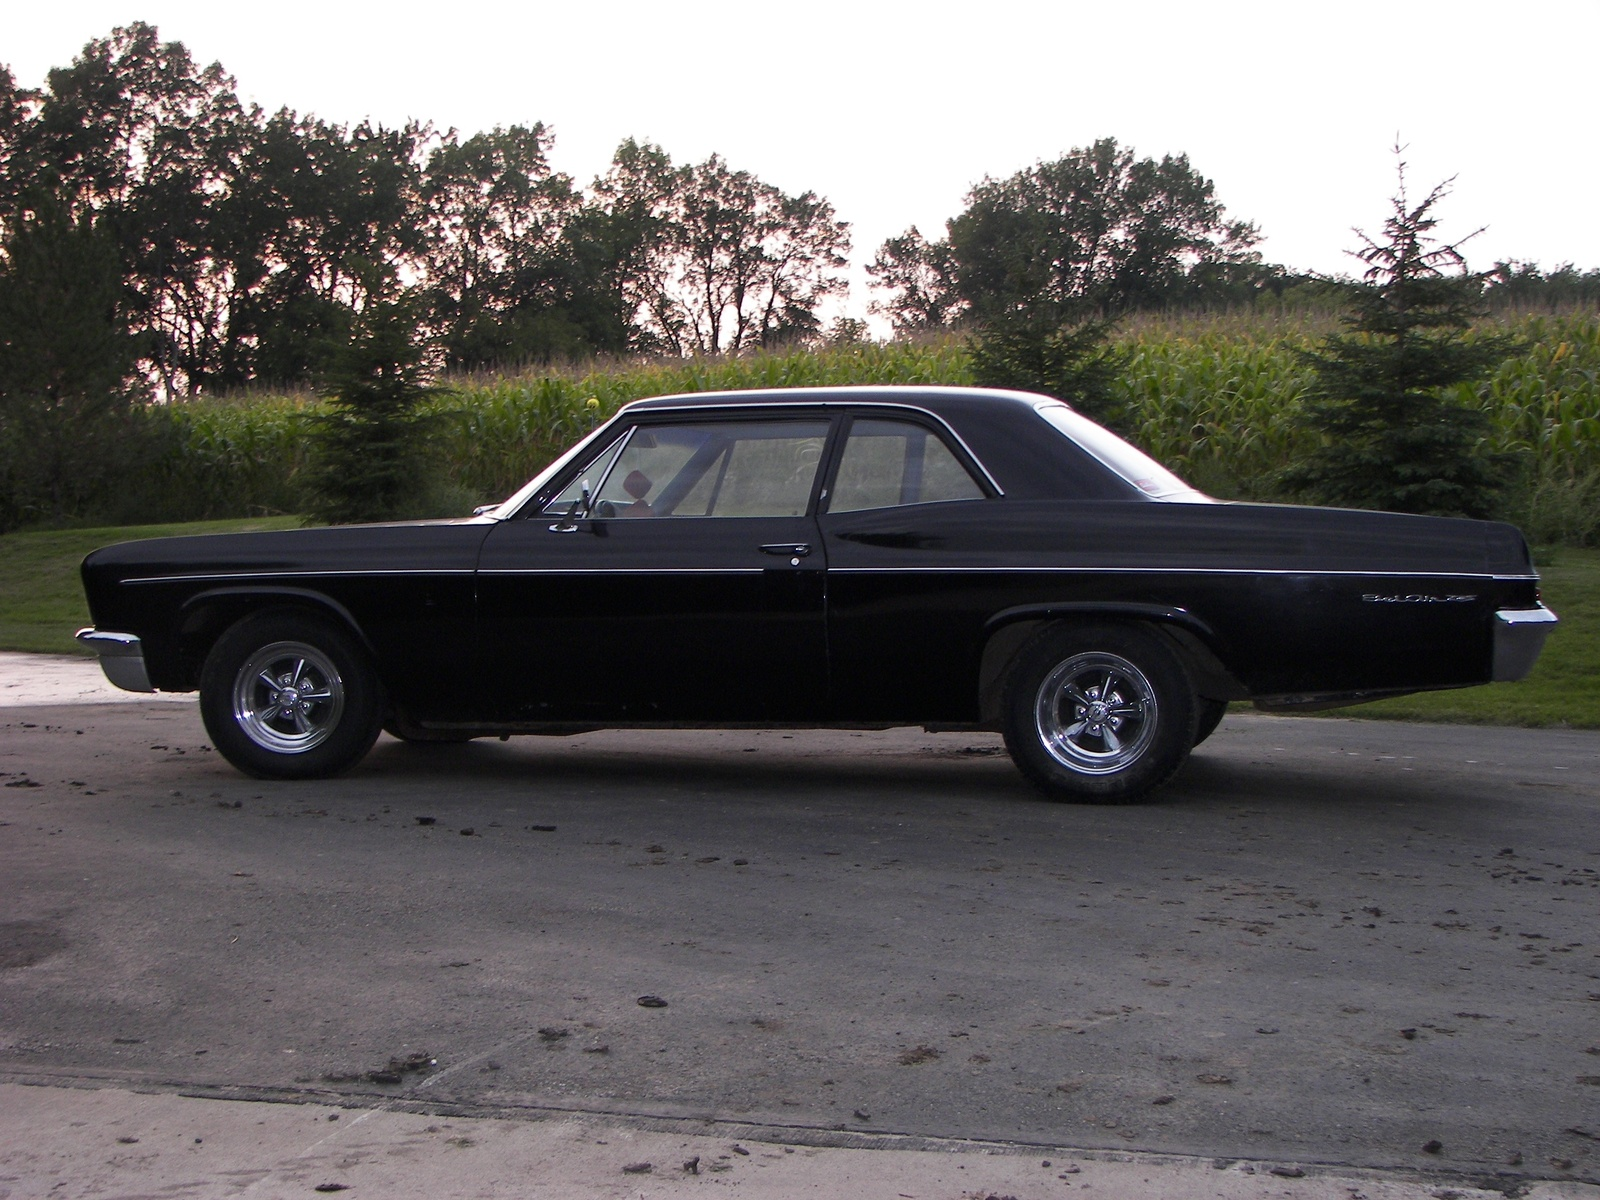 Click image for larger version  Name:1966_chevrolet_bel_air-pic-16353.jpg Views:68 Size:654.1 KB ID:72976